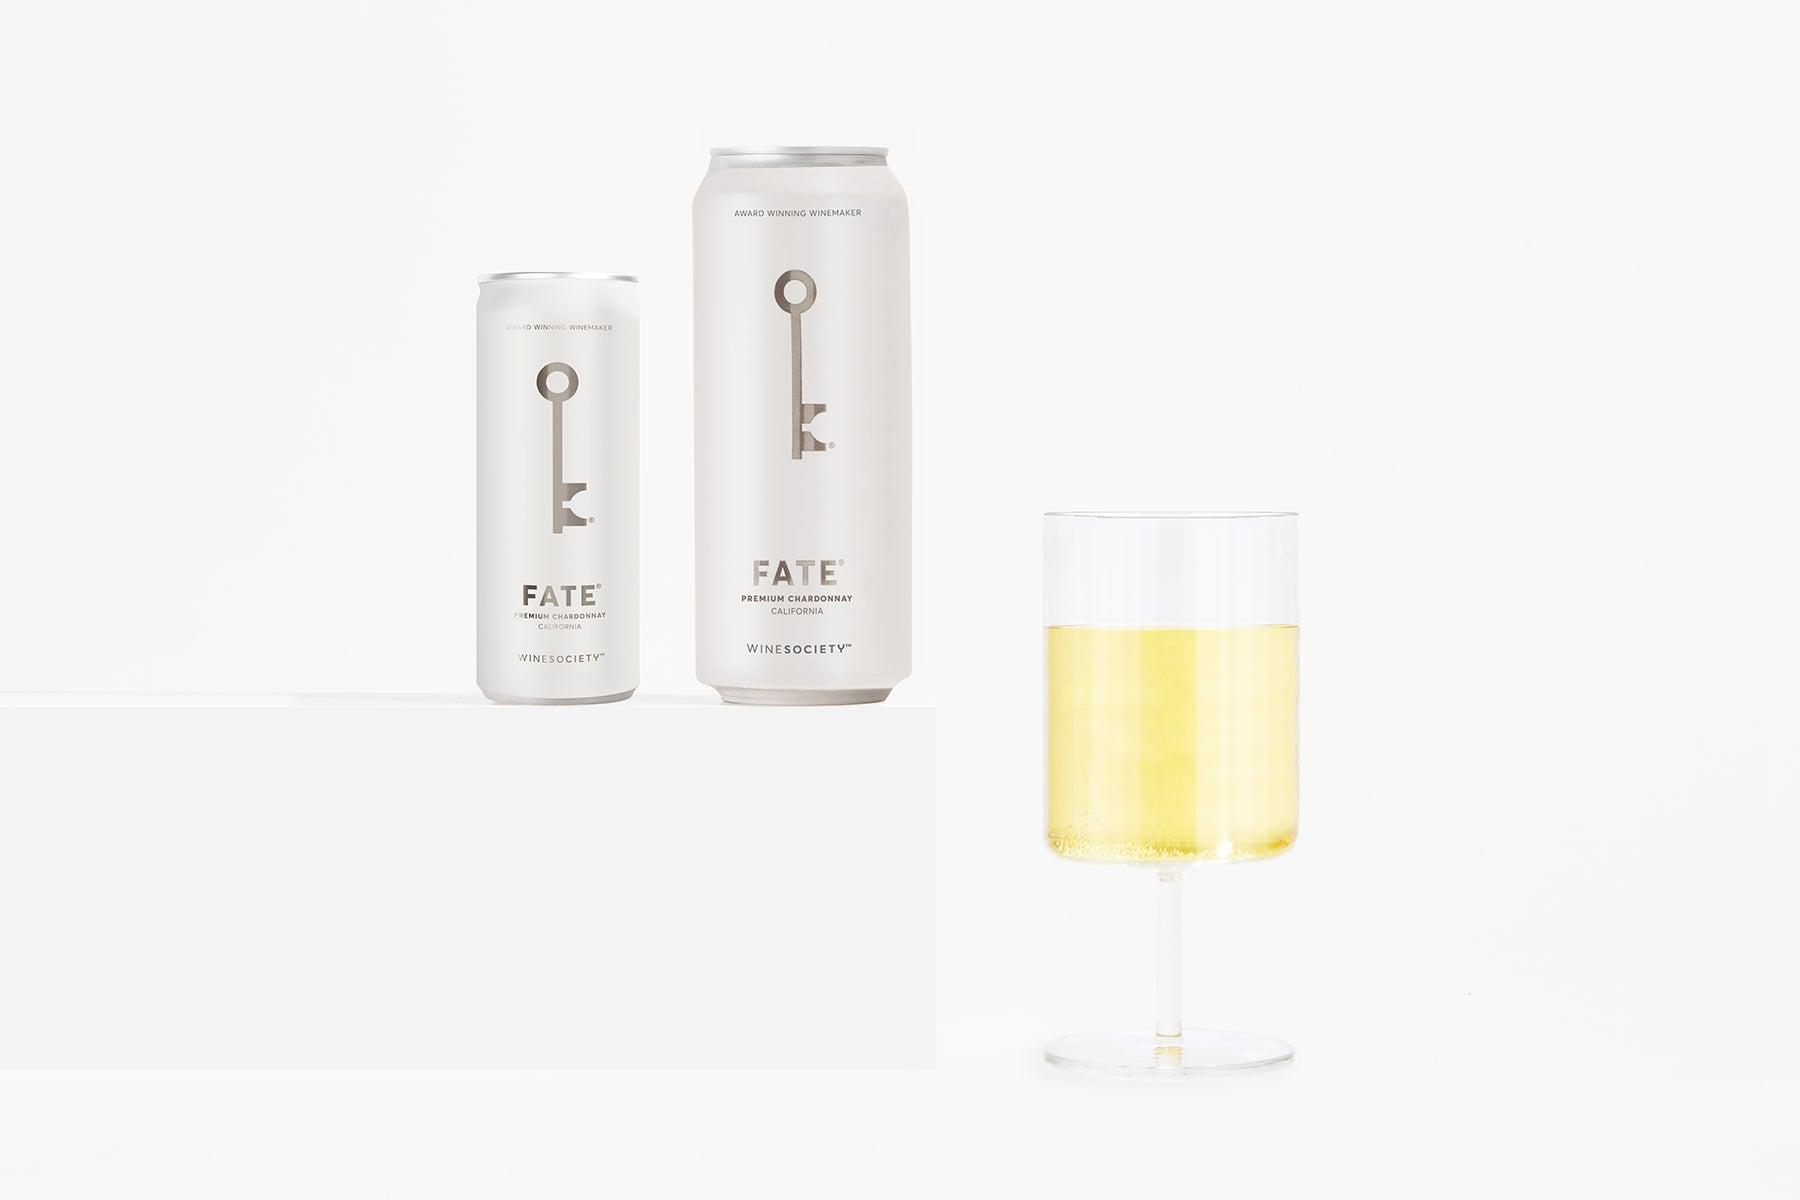 Download an image of FATE 500mL & 250ML Cans